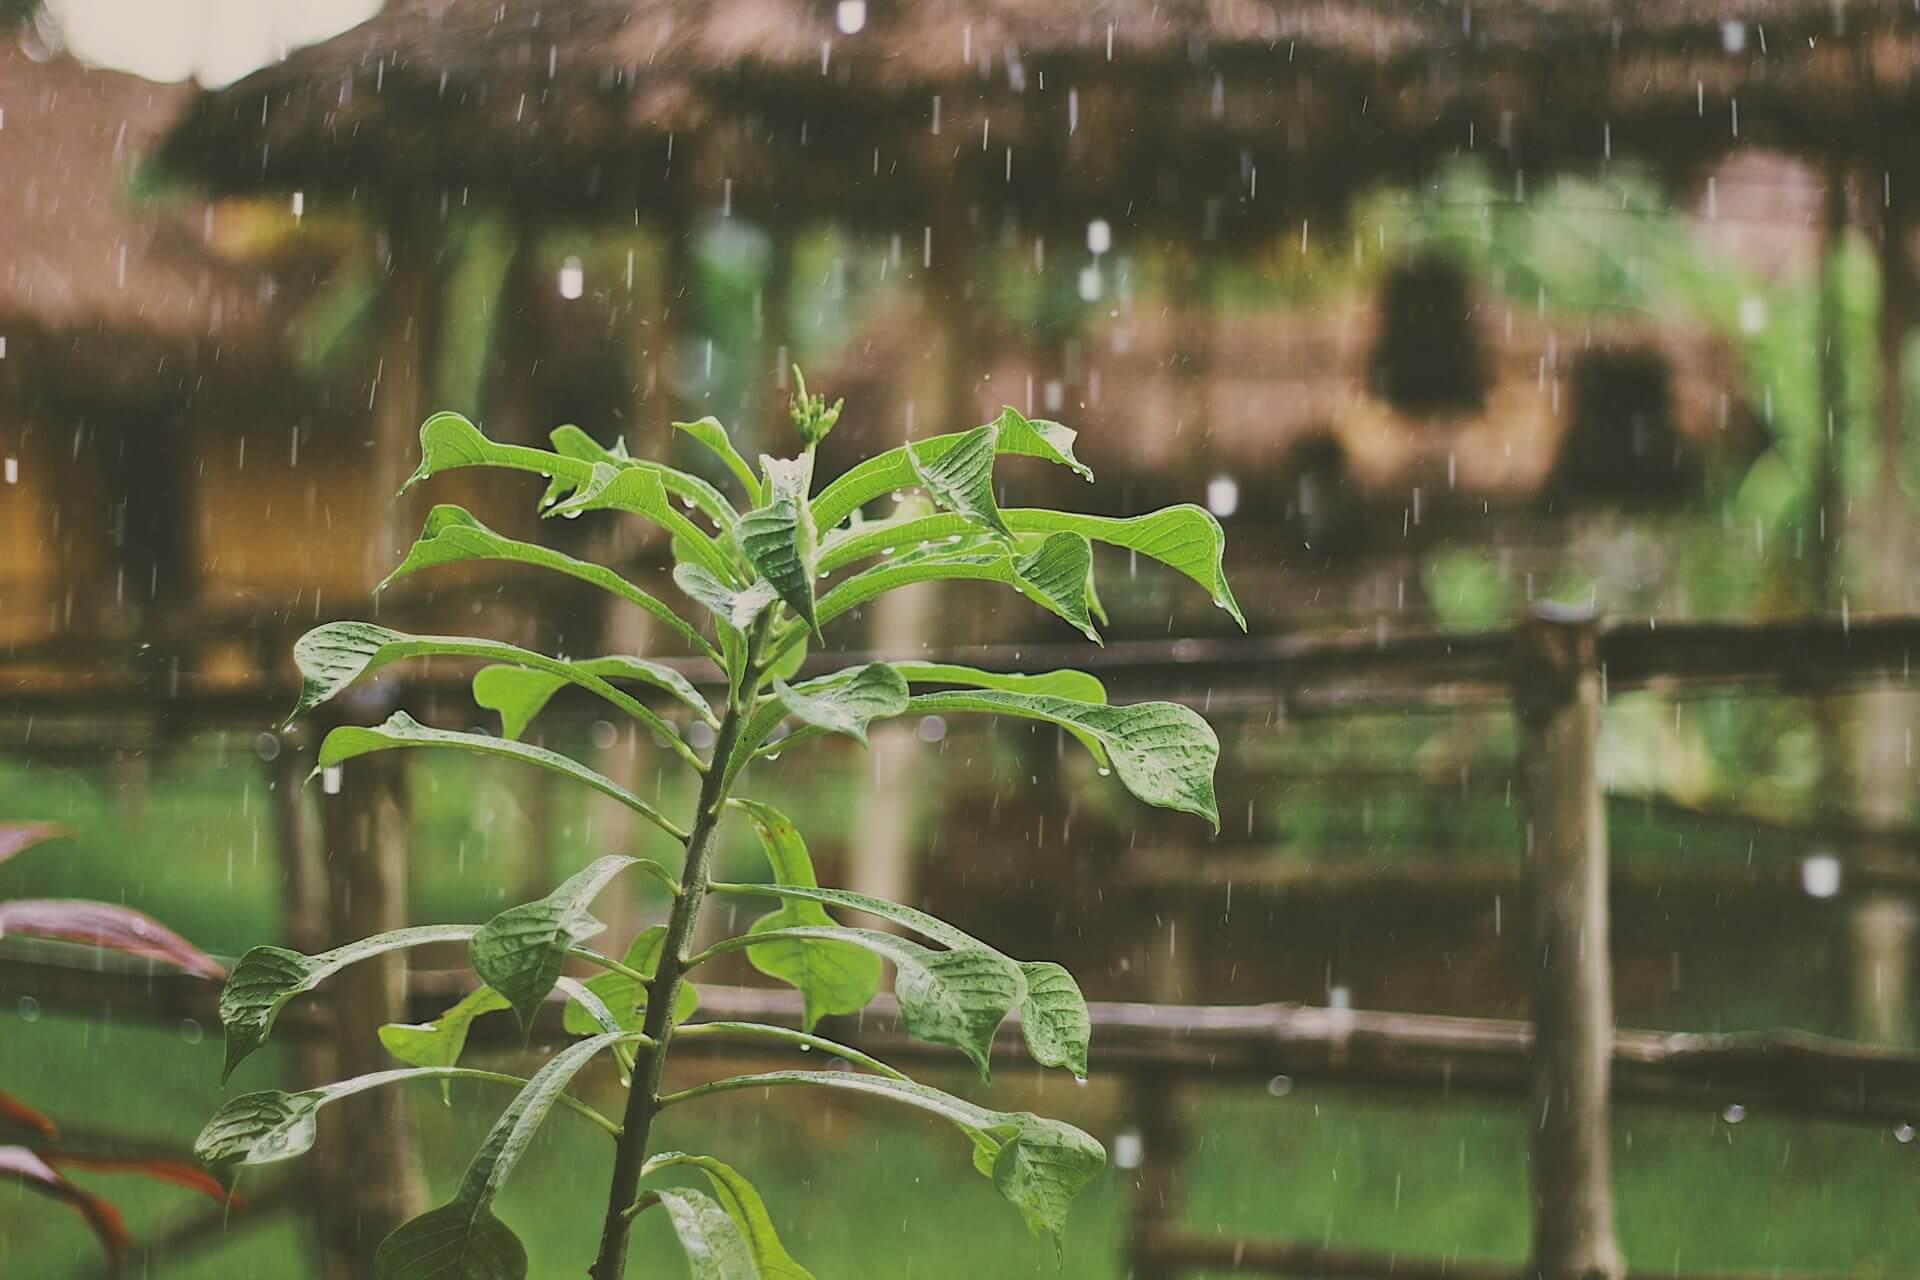 A plant being rained on in a home garden